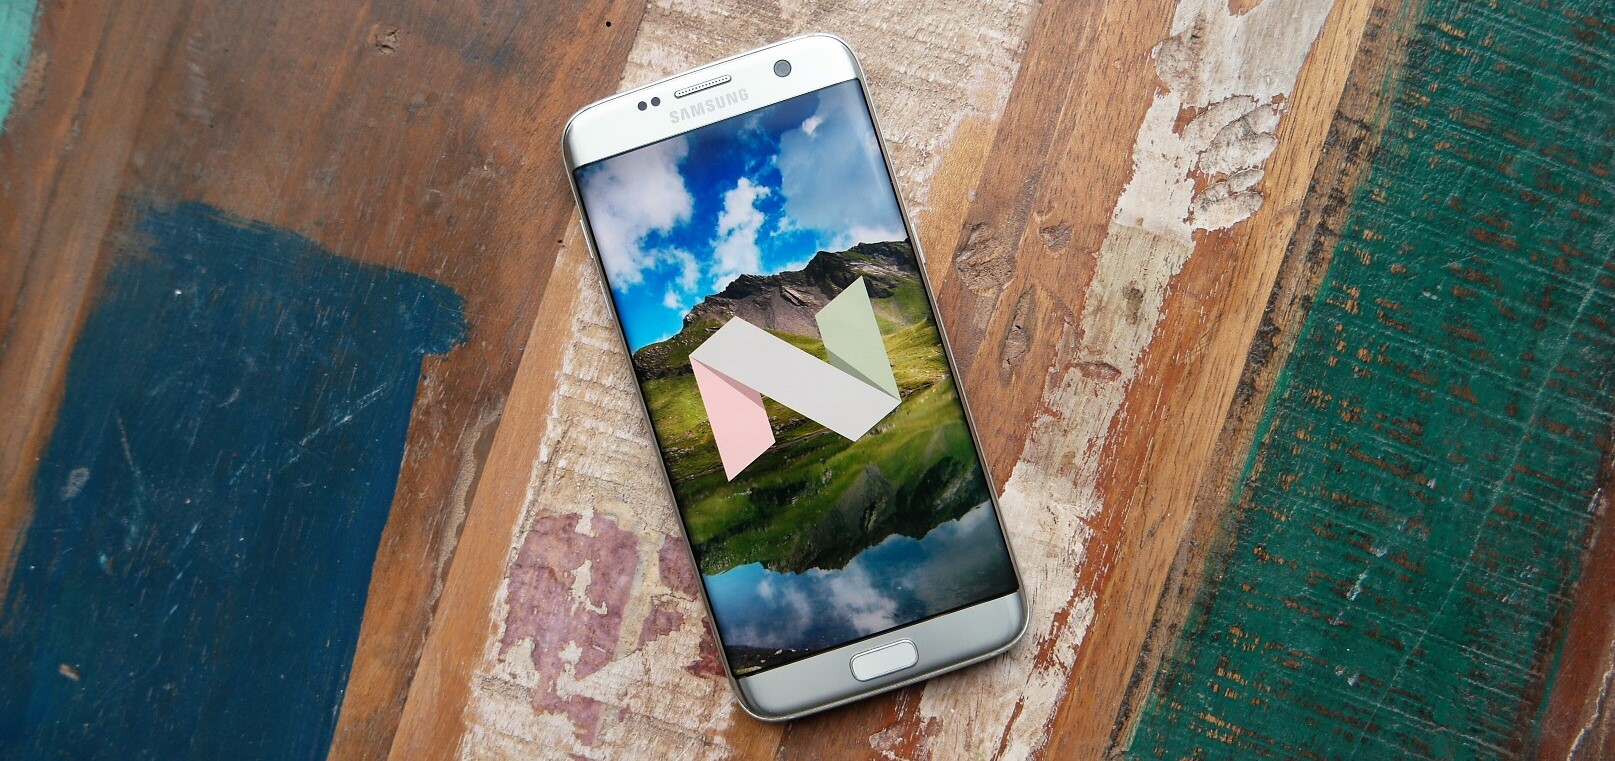 BREAKING: Samsung starts rolling out Android Nougat to the Galaxy S7